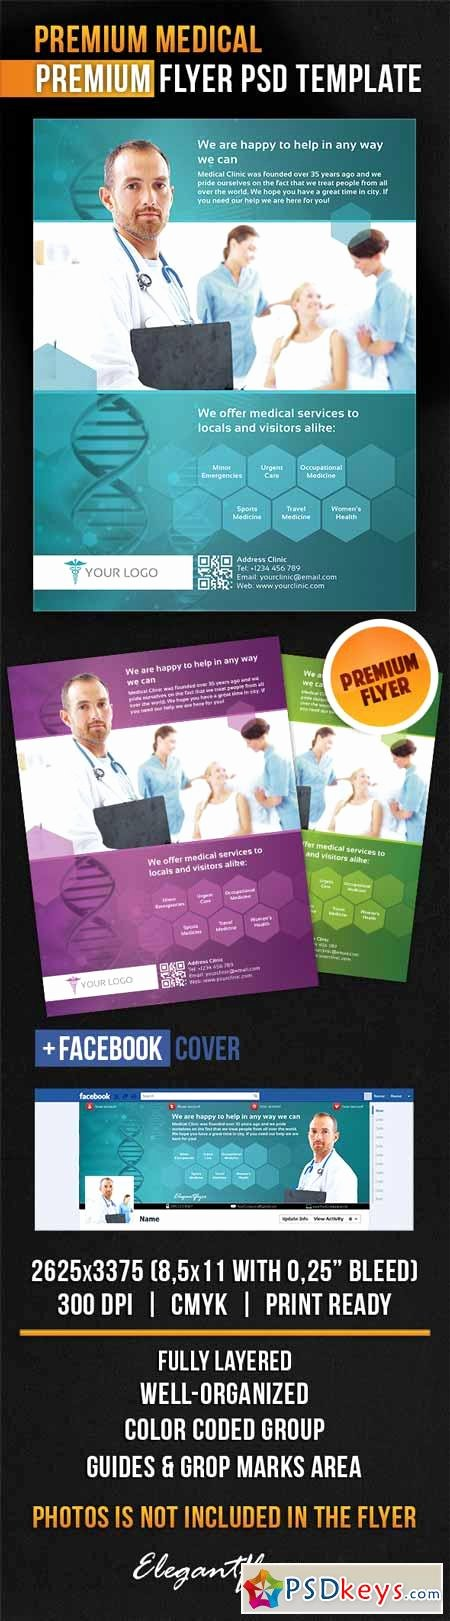 Facebook Cover Template Psd Luxury Premium Medical – Flyer Psd Template Cover